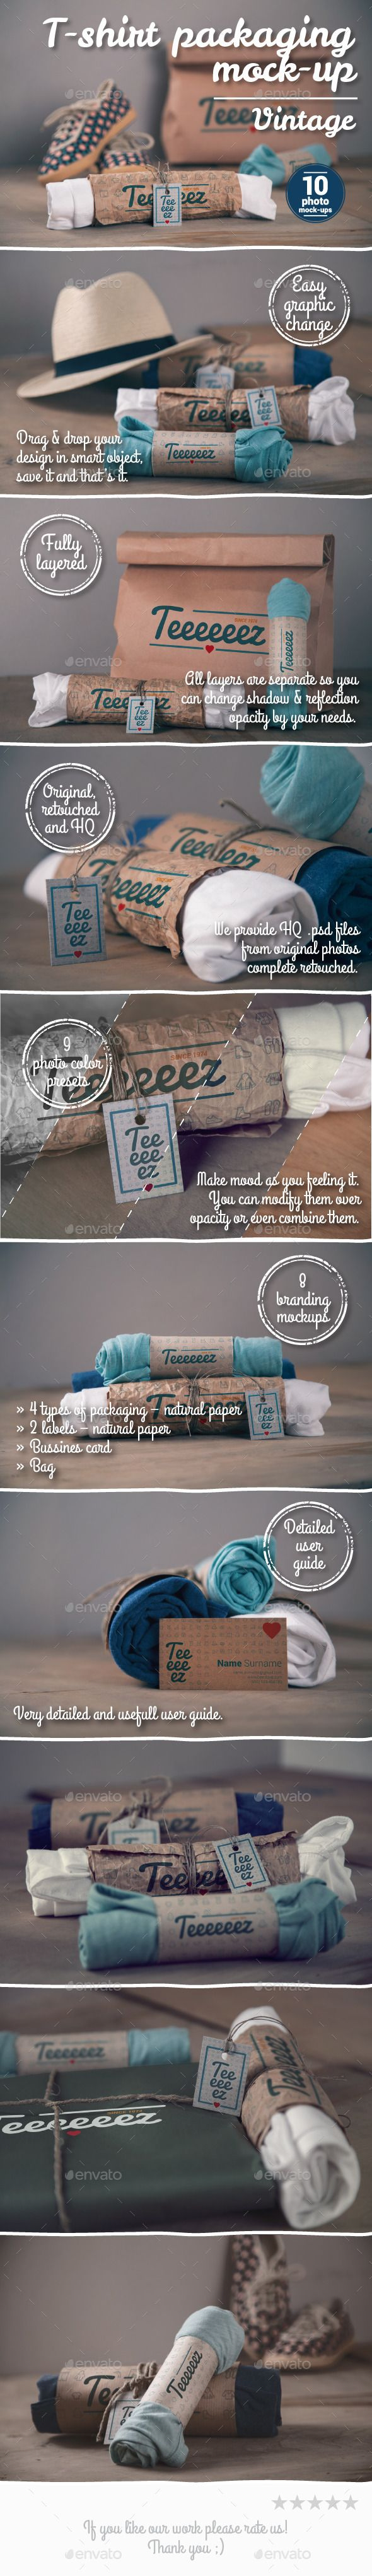 T-shirt package mock-up is set of 10 photographed and retouched images with added mockups for branding purposes.